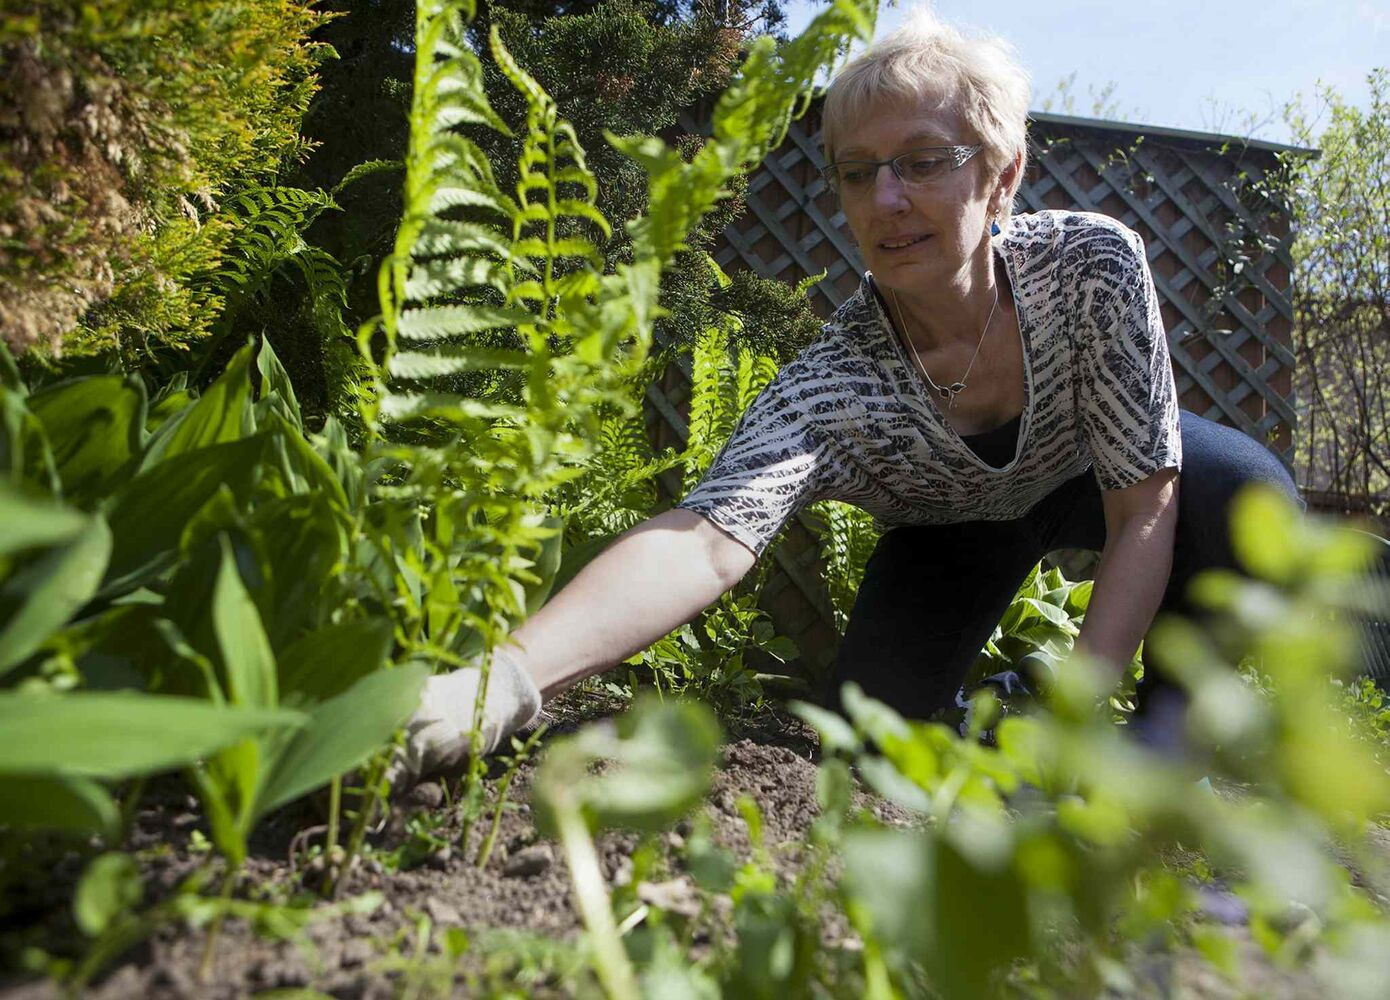 Eileen Boxall tends to her backyard garden in Toronto. (Jesse Johnston / The Canadian Press)